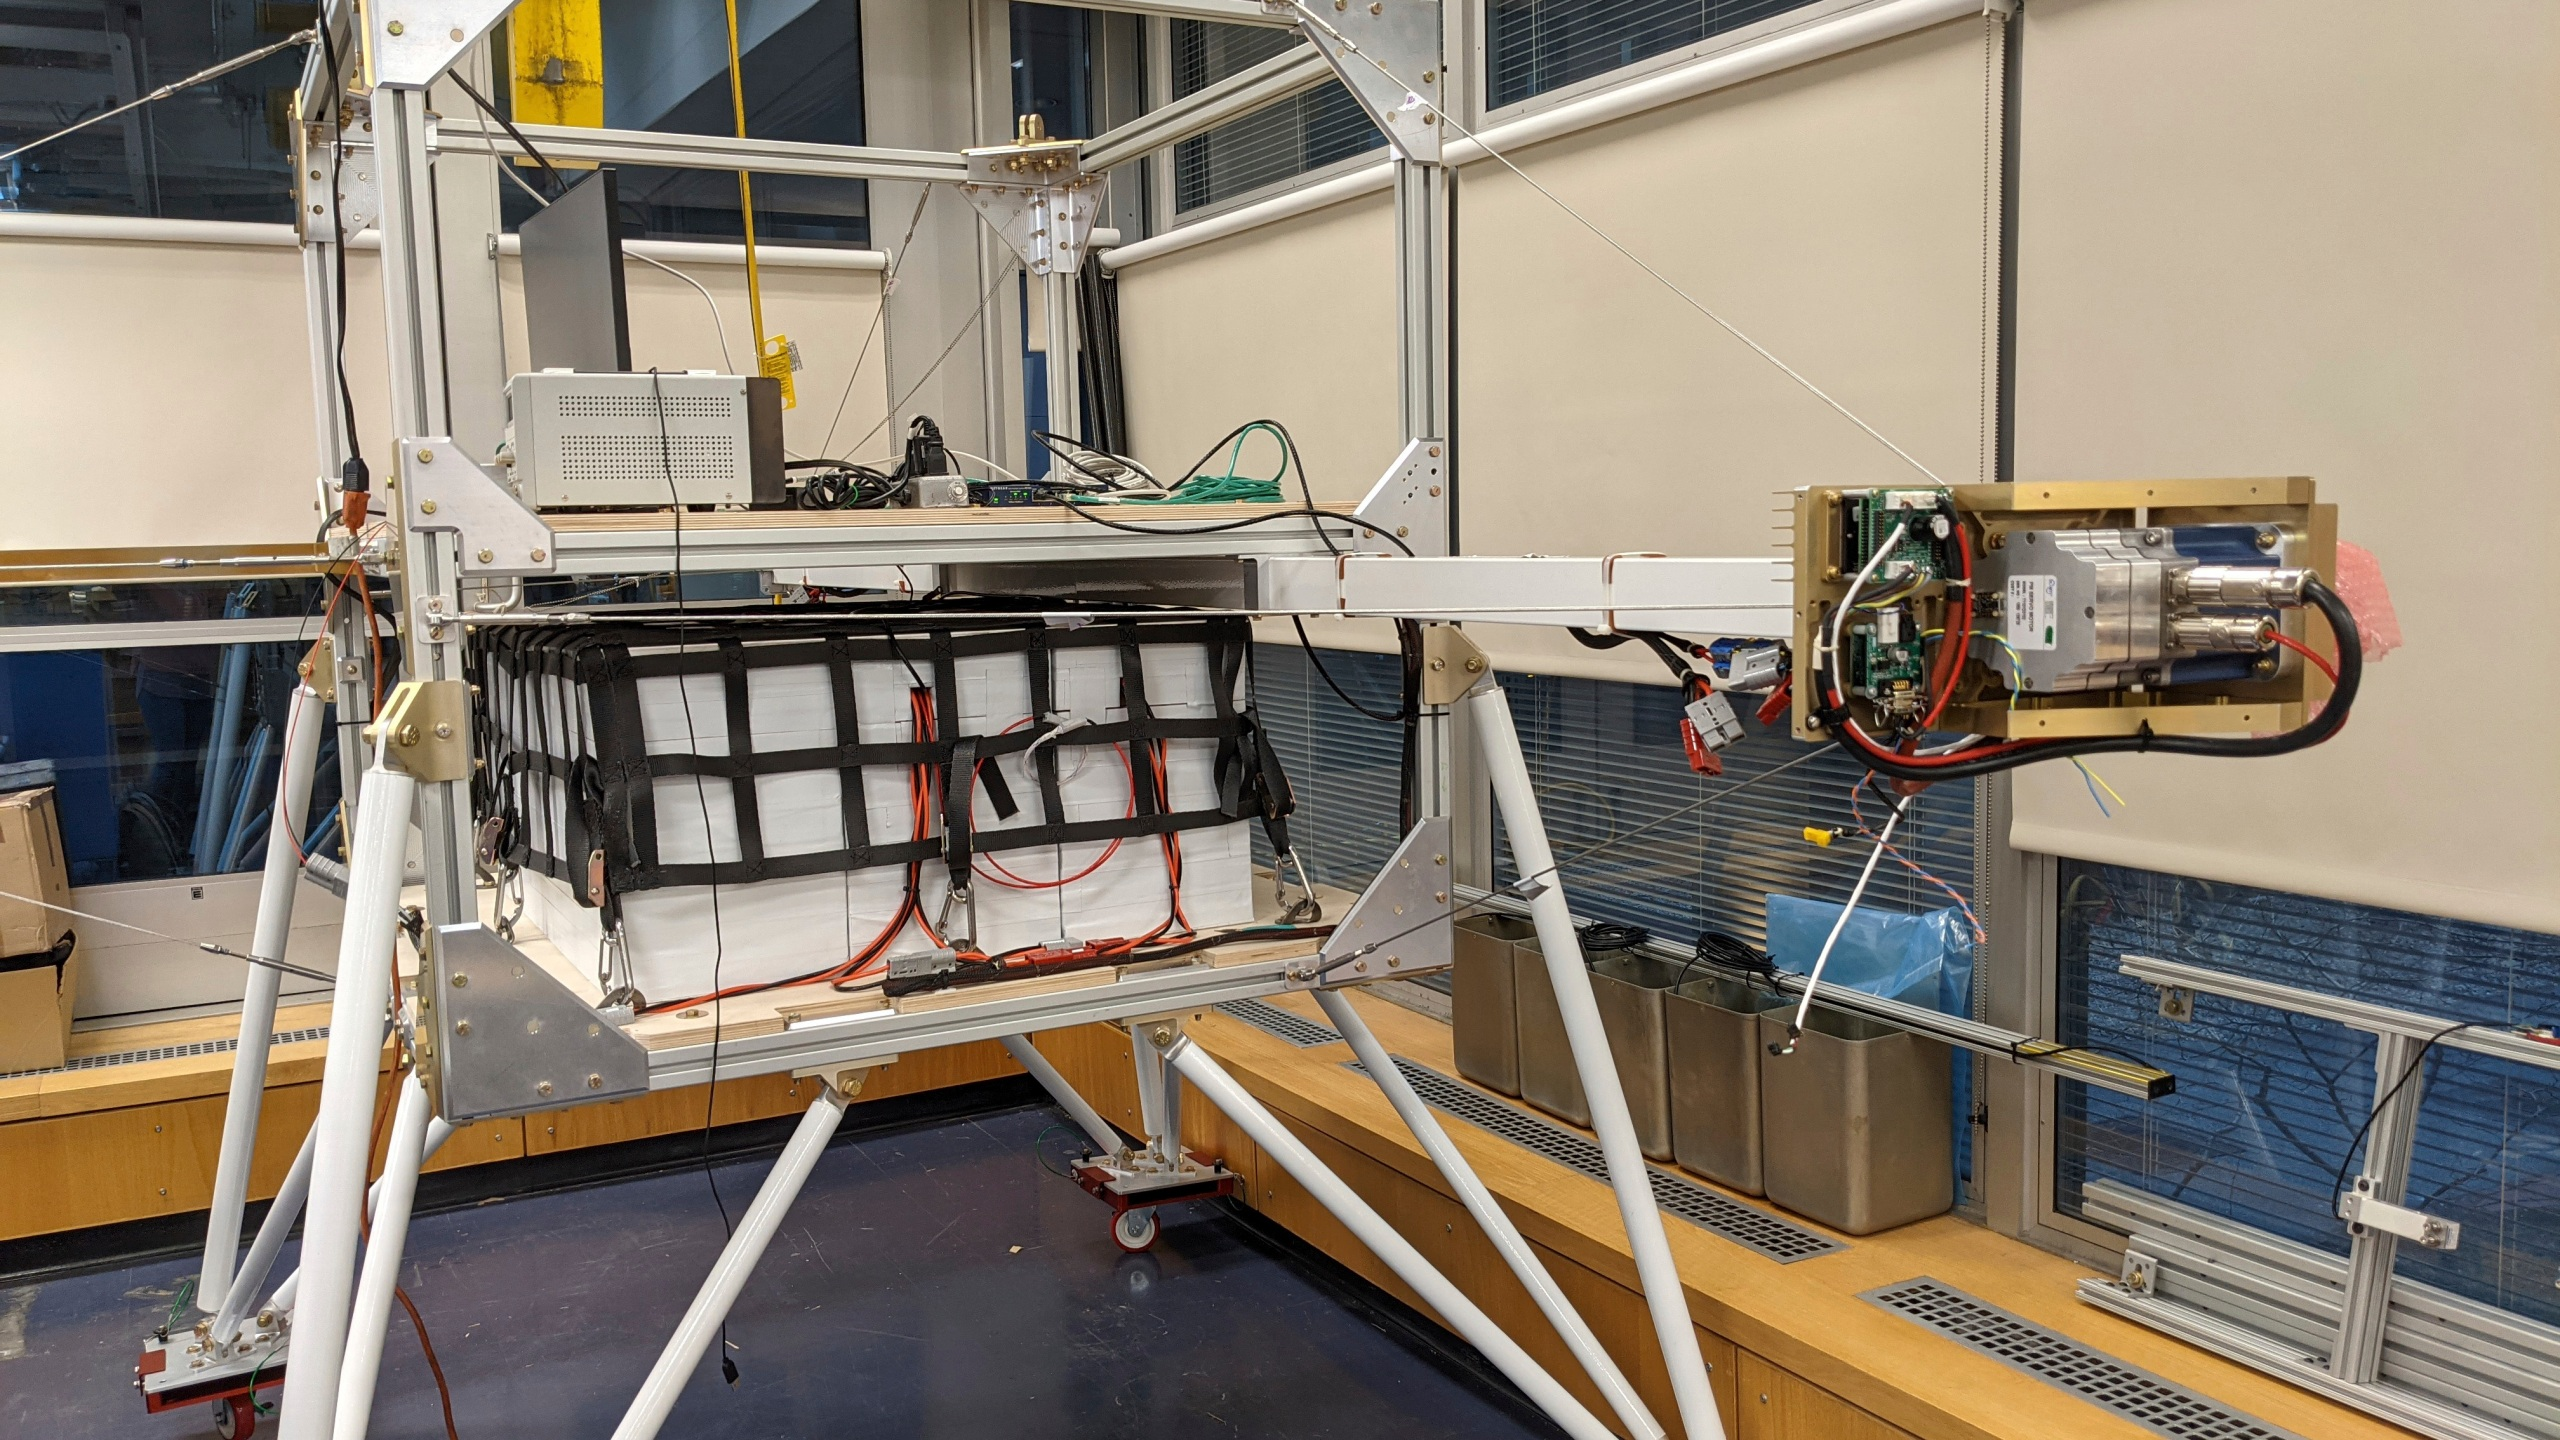 This March 2021 photo provided by researcher Yomay Shyur shows a gondola at a Harvard University facility in Cambridge, Mass., which will be tested on a balloon over Sweden for eventual possible use in releasing sunlight-reflecting aerosols into the Earth's atmosphere. On Thursday, March 25, 2021, the National Academy of Sciences said the U.S. must seriously consider the idea of tinkering with the atmosphere to cool a warming Earth and accelerate research into how and whether humanity should hack the planet. (Yomay Shyur via AP)